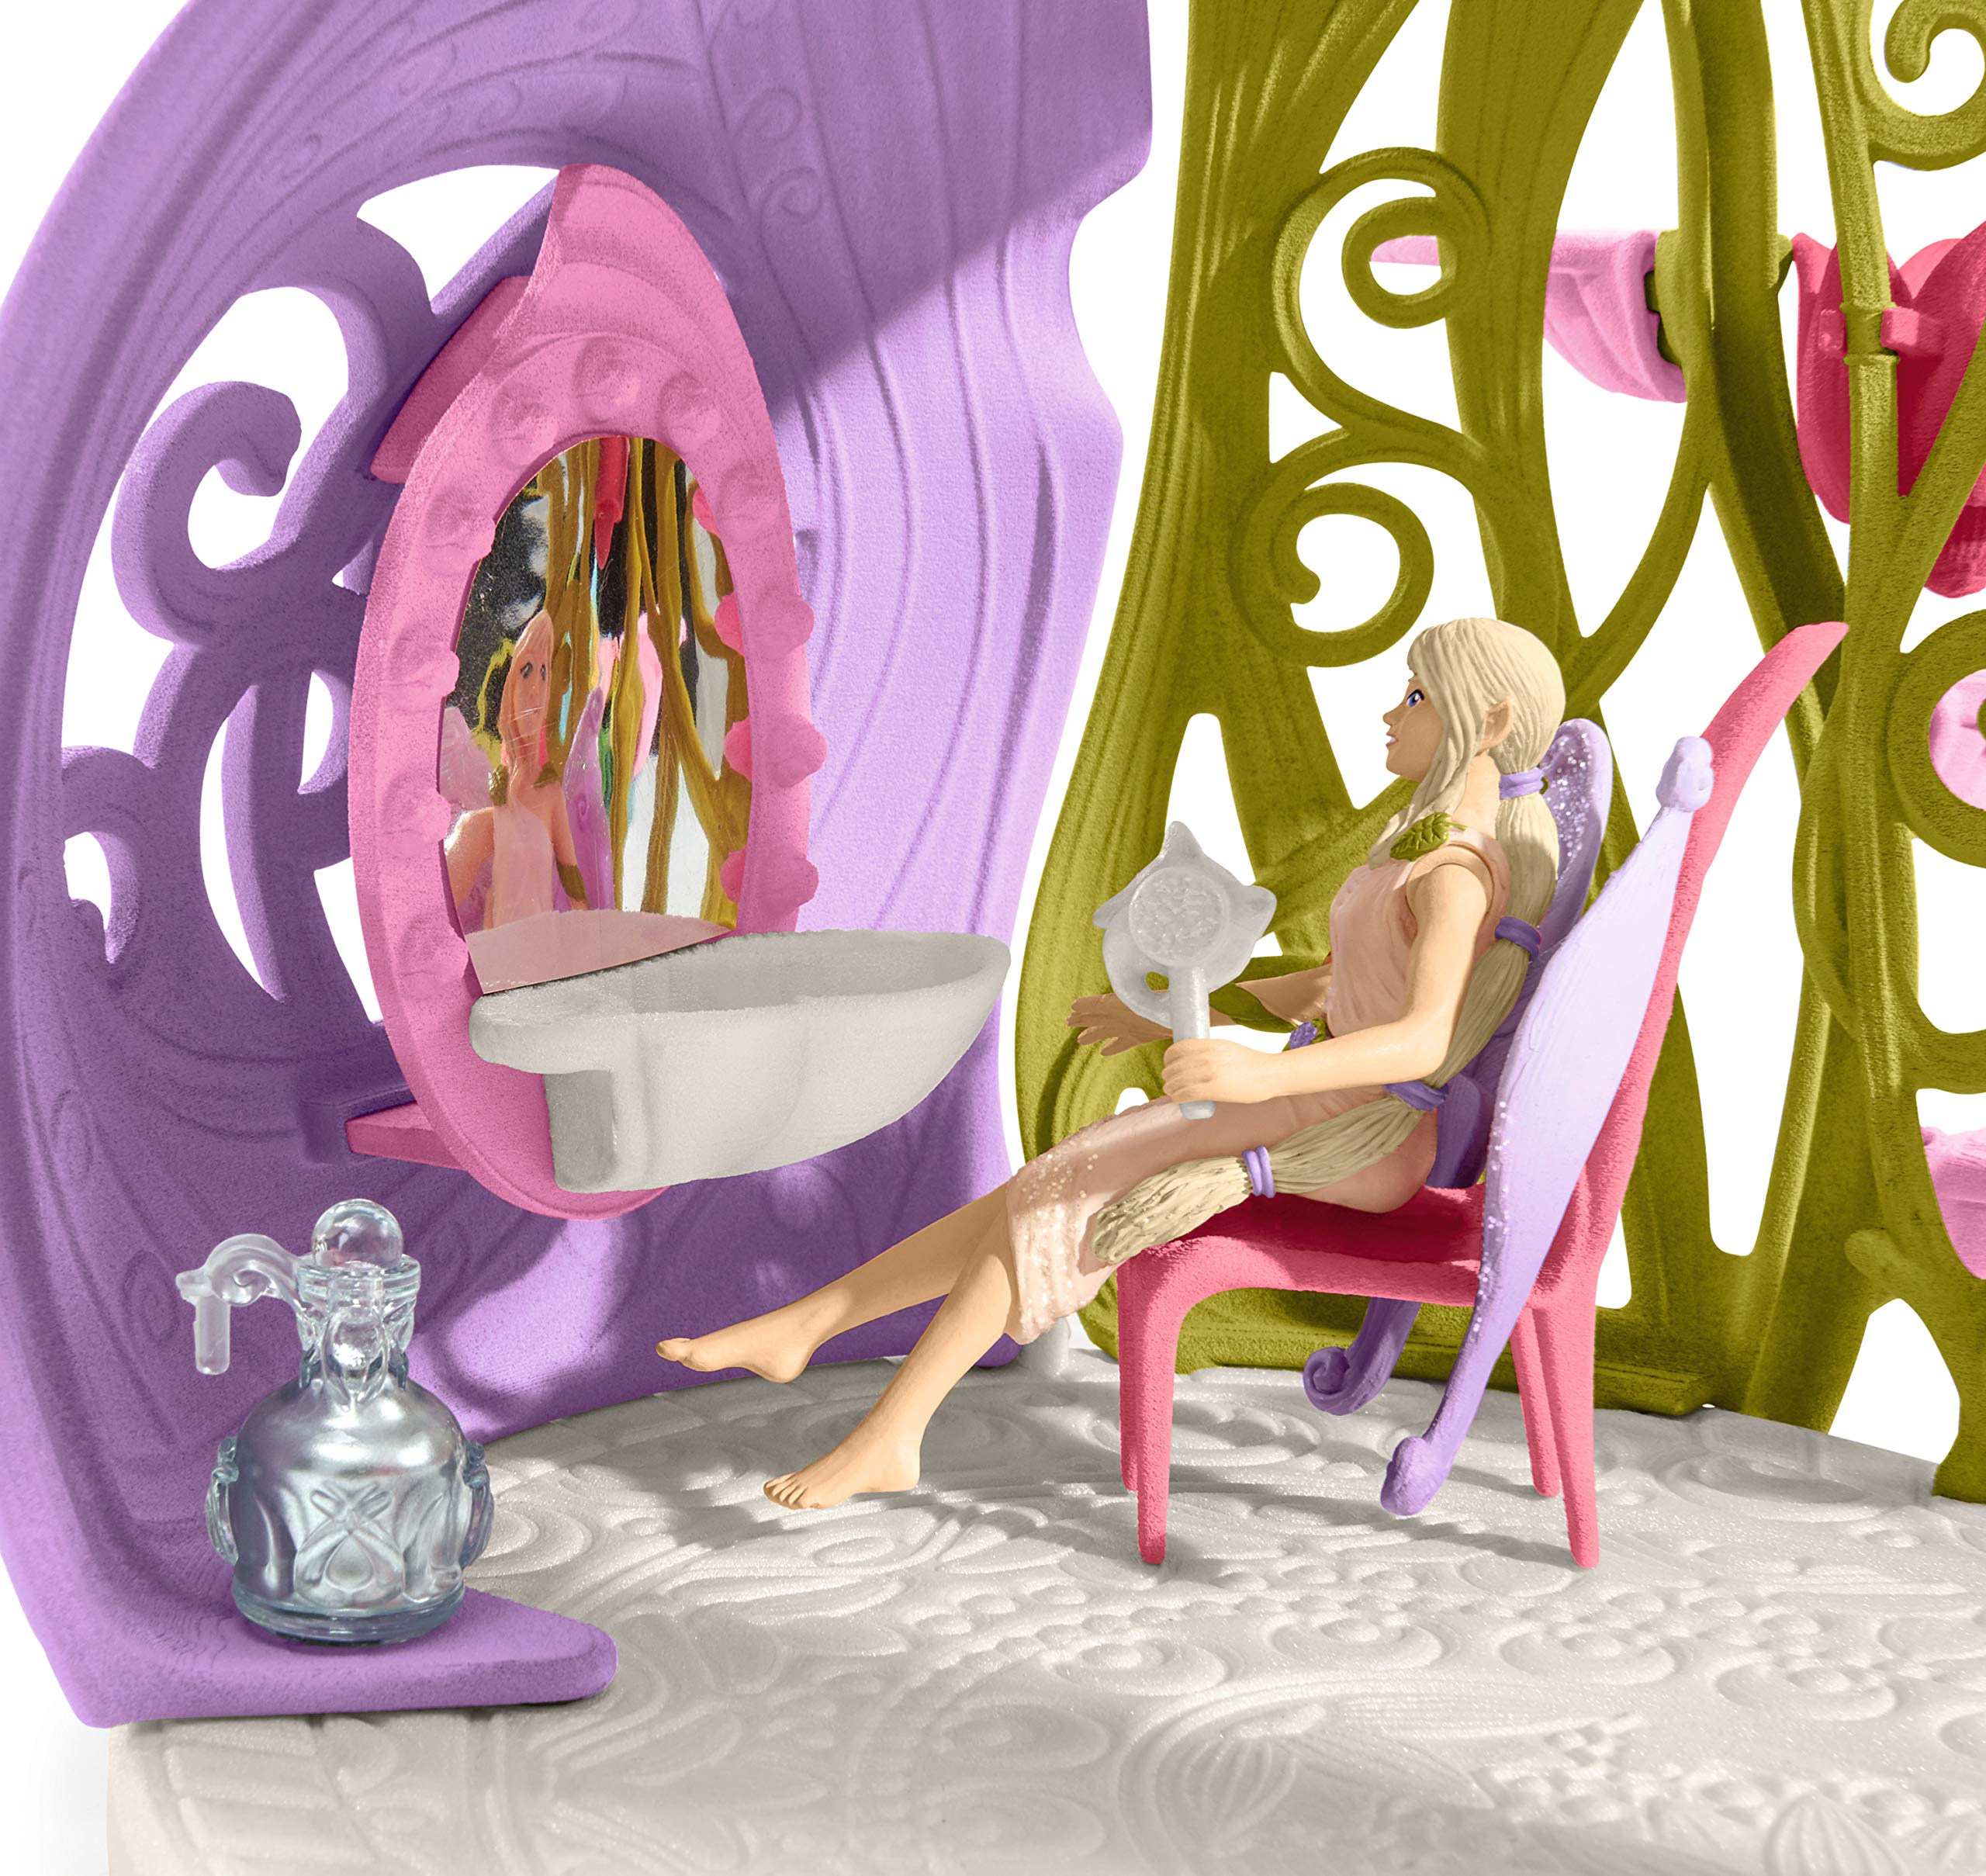 Schleich Glittering Flower House with Unicorns, Lake and Stable, Multicolor by Schleich (Image #5)